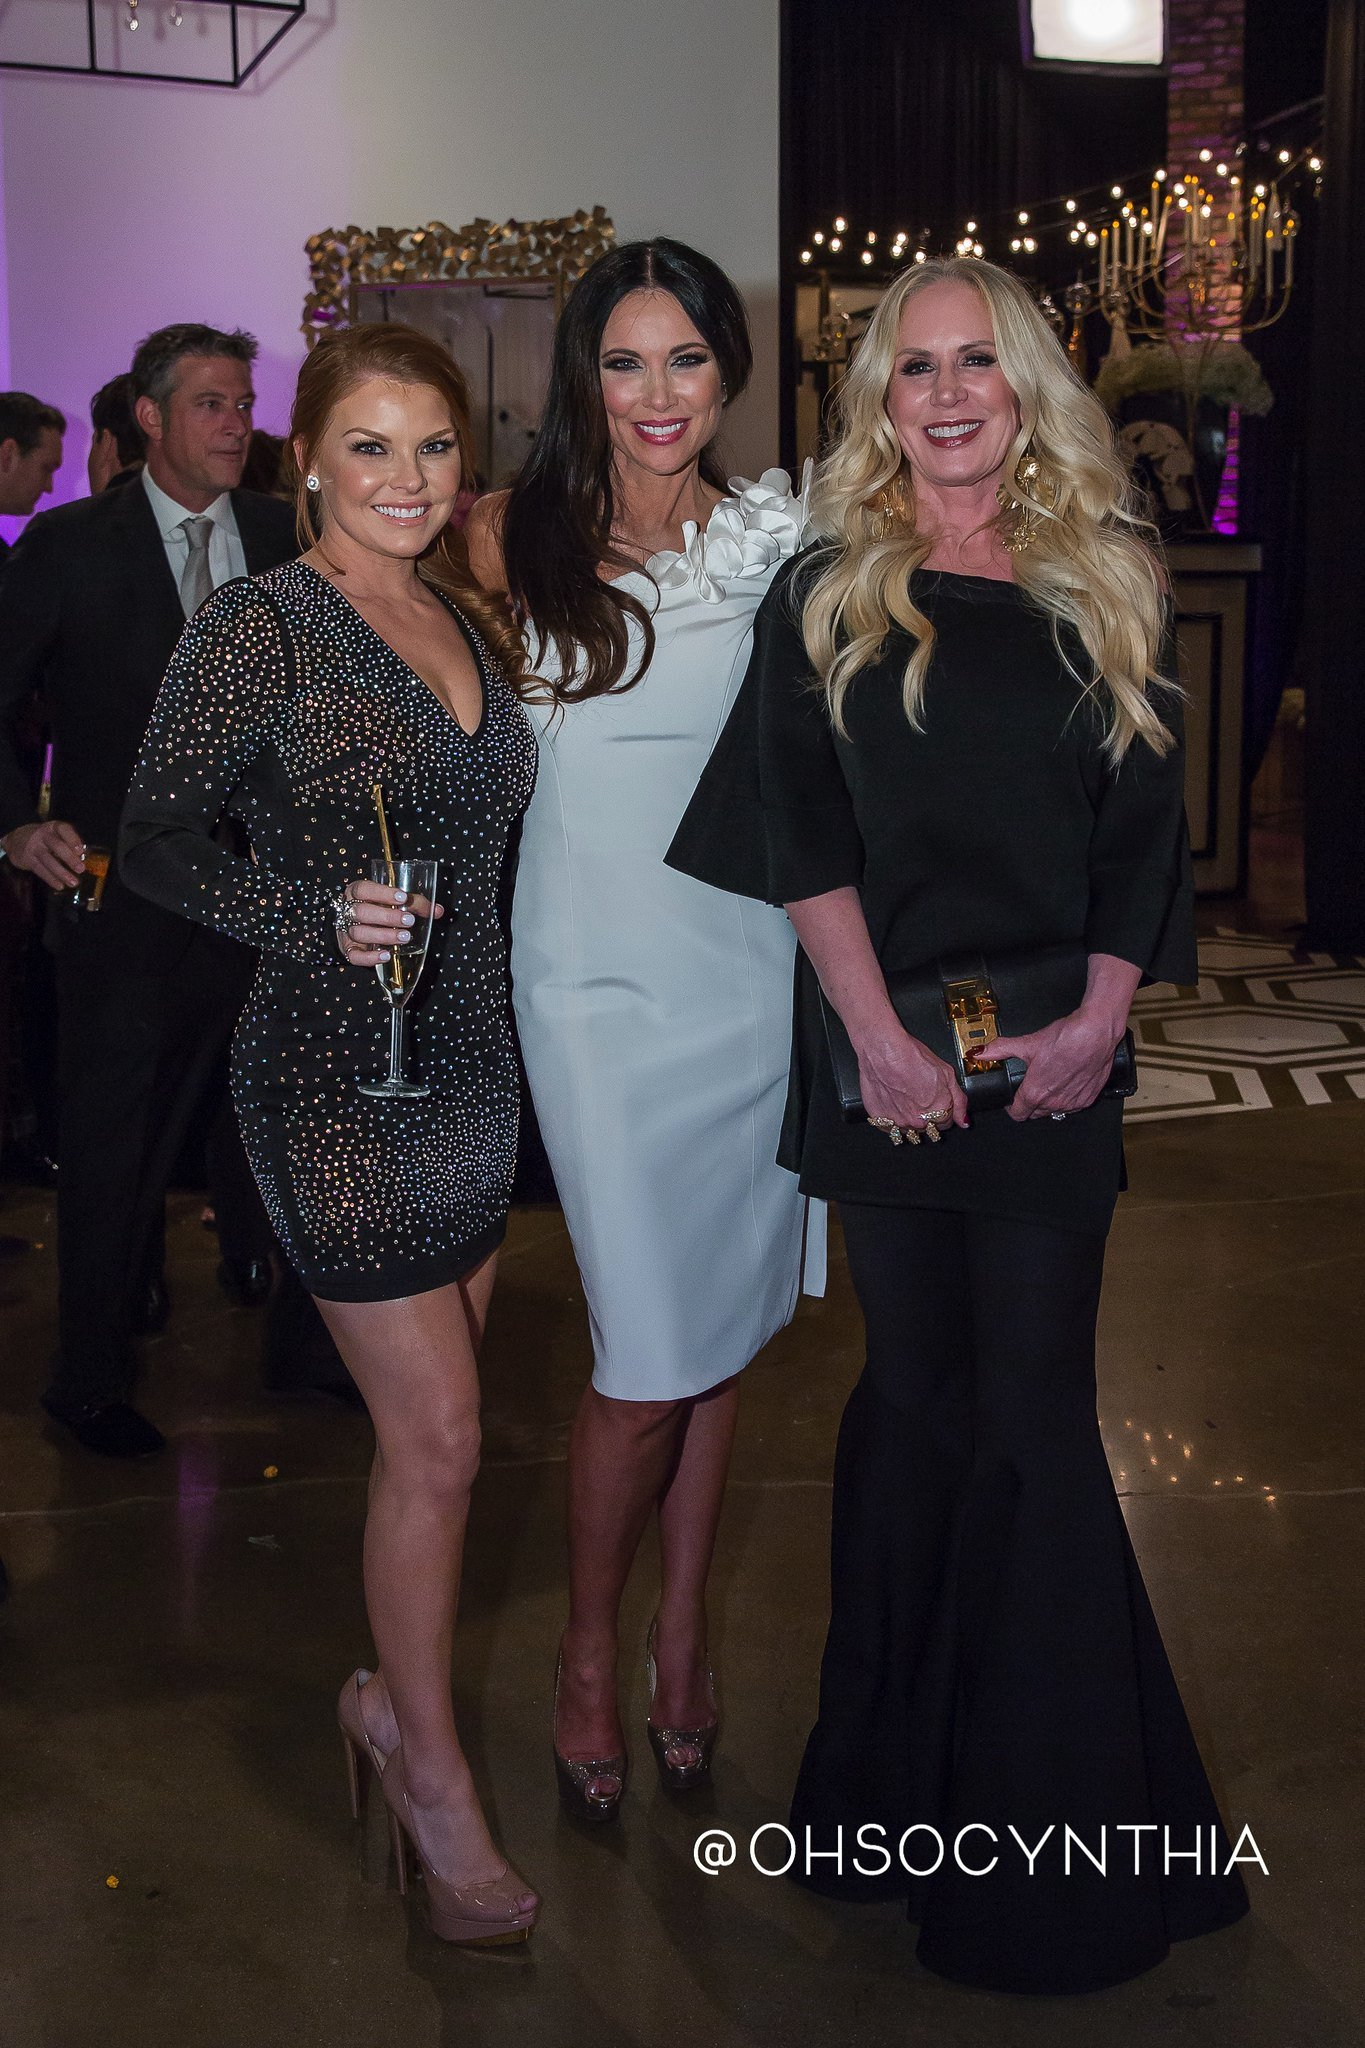 """Brandi Redmond, LeeAnne Locken, and Heidi Dillonat the Prashe showroom for an event thatwas filmed for season 2 of """"The Real Housewives of Dallas"""" on February 1, 2017   Photo: Flickr/Thomas Garza/CC BY-NC-ND 2.0 by Oh So Cynthia"""